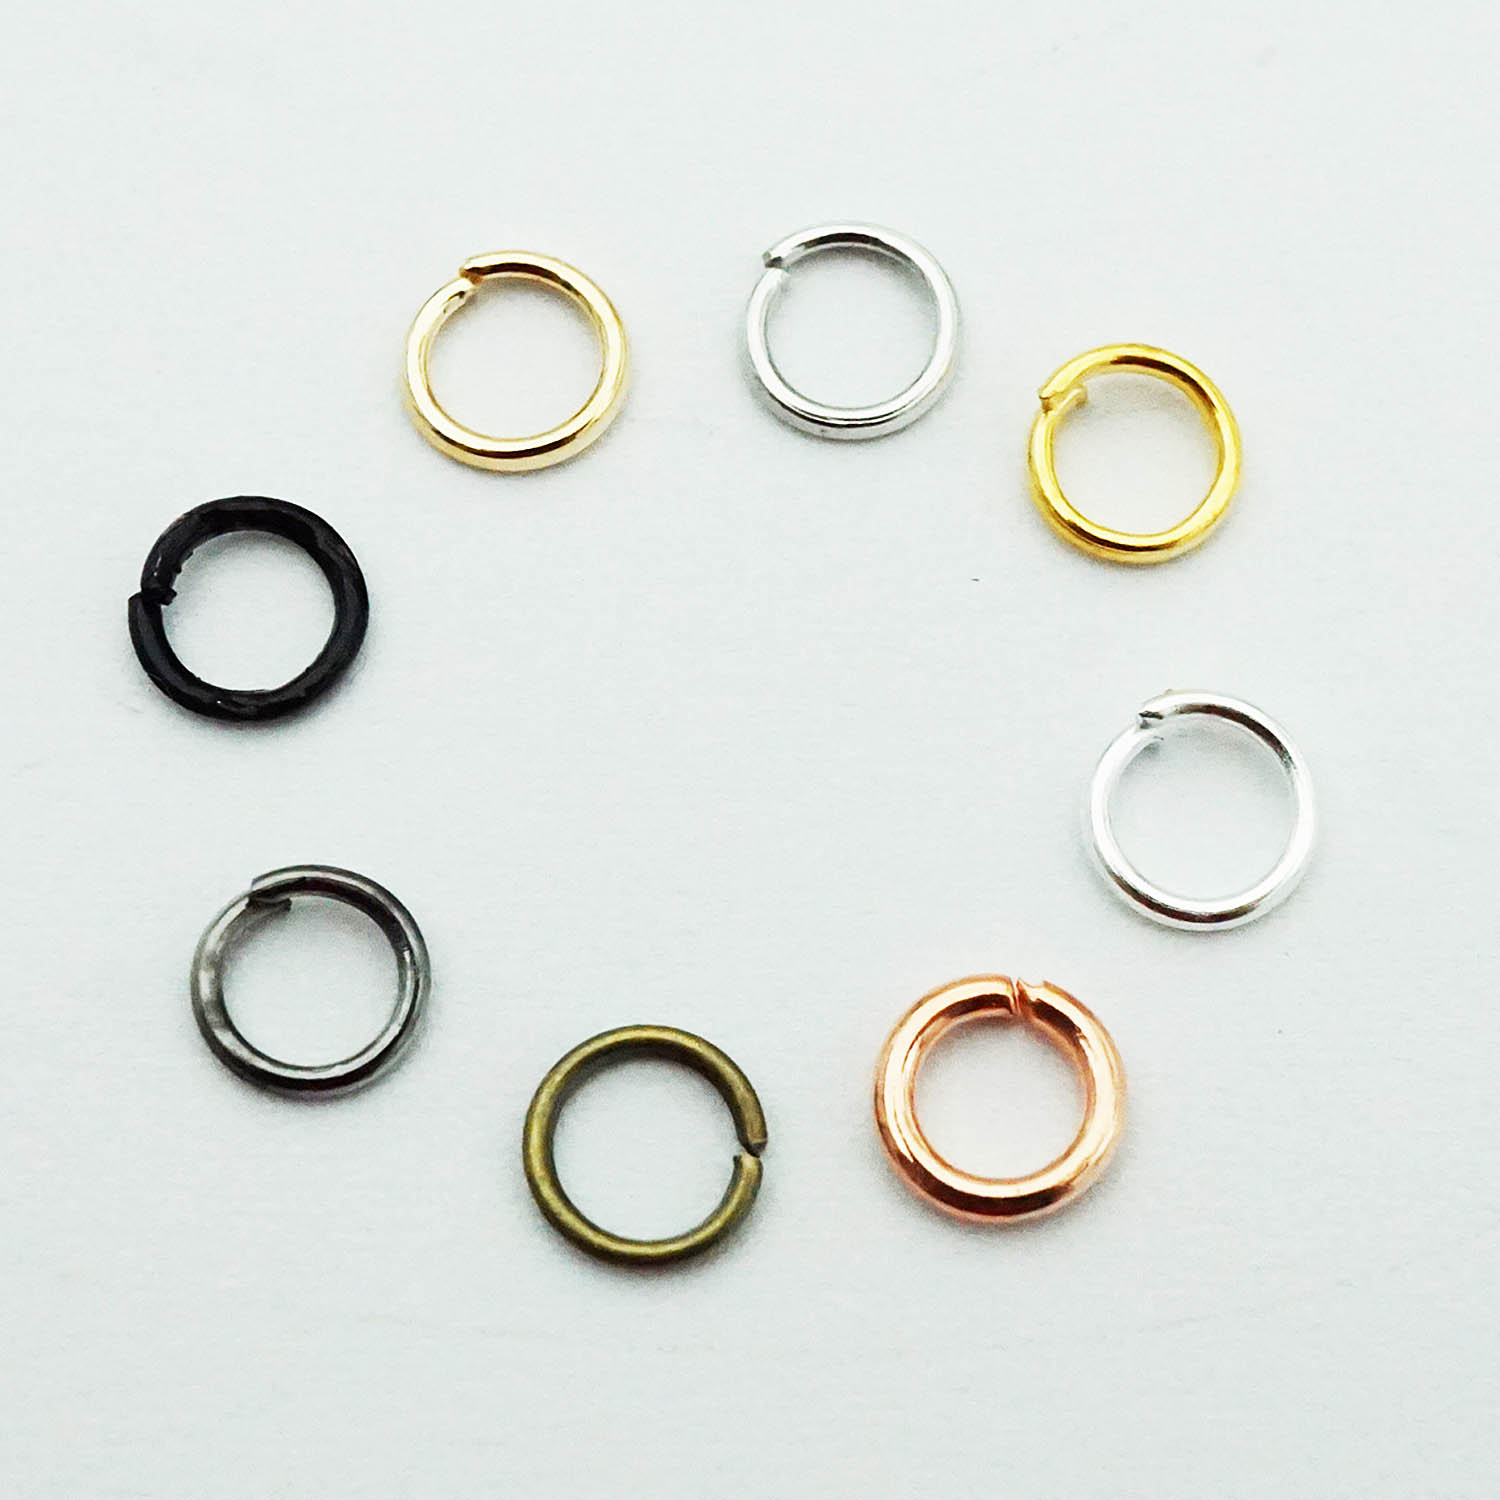 300Pcs/lot Silver/kc Gold/black/Bronze/Gold Open Circle Jump Rings Open Single Loop For DIY Necklace Bracelet Jewelry Making